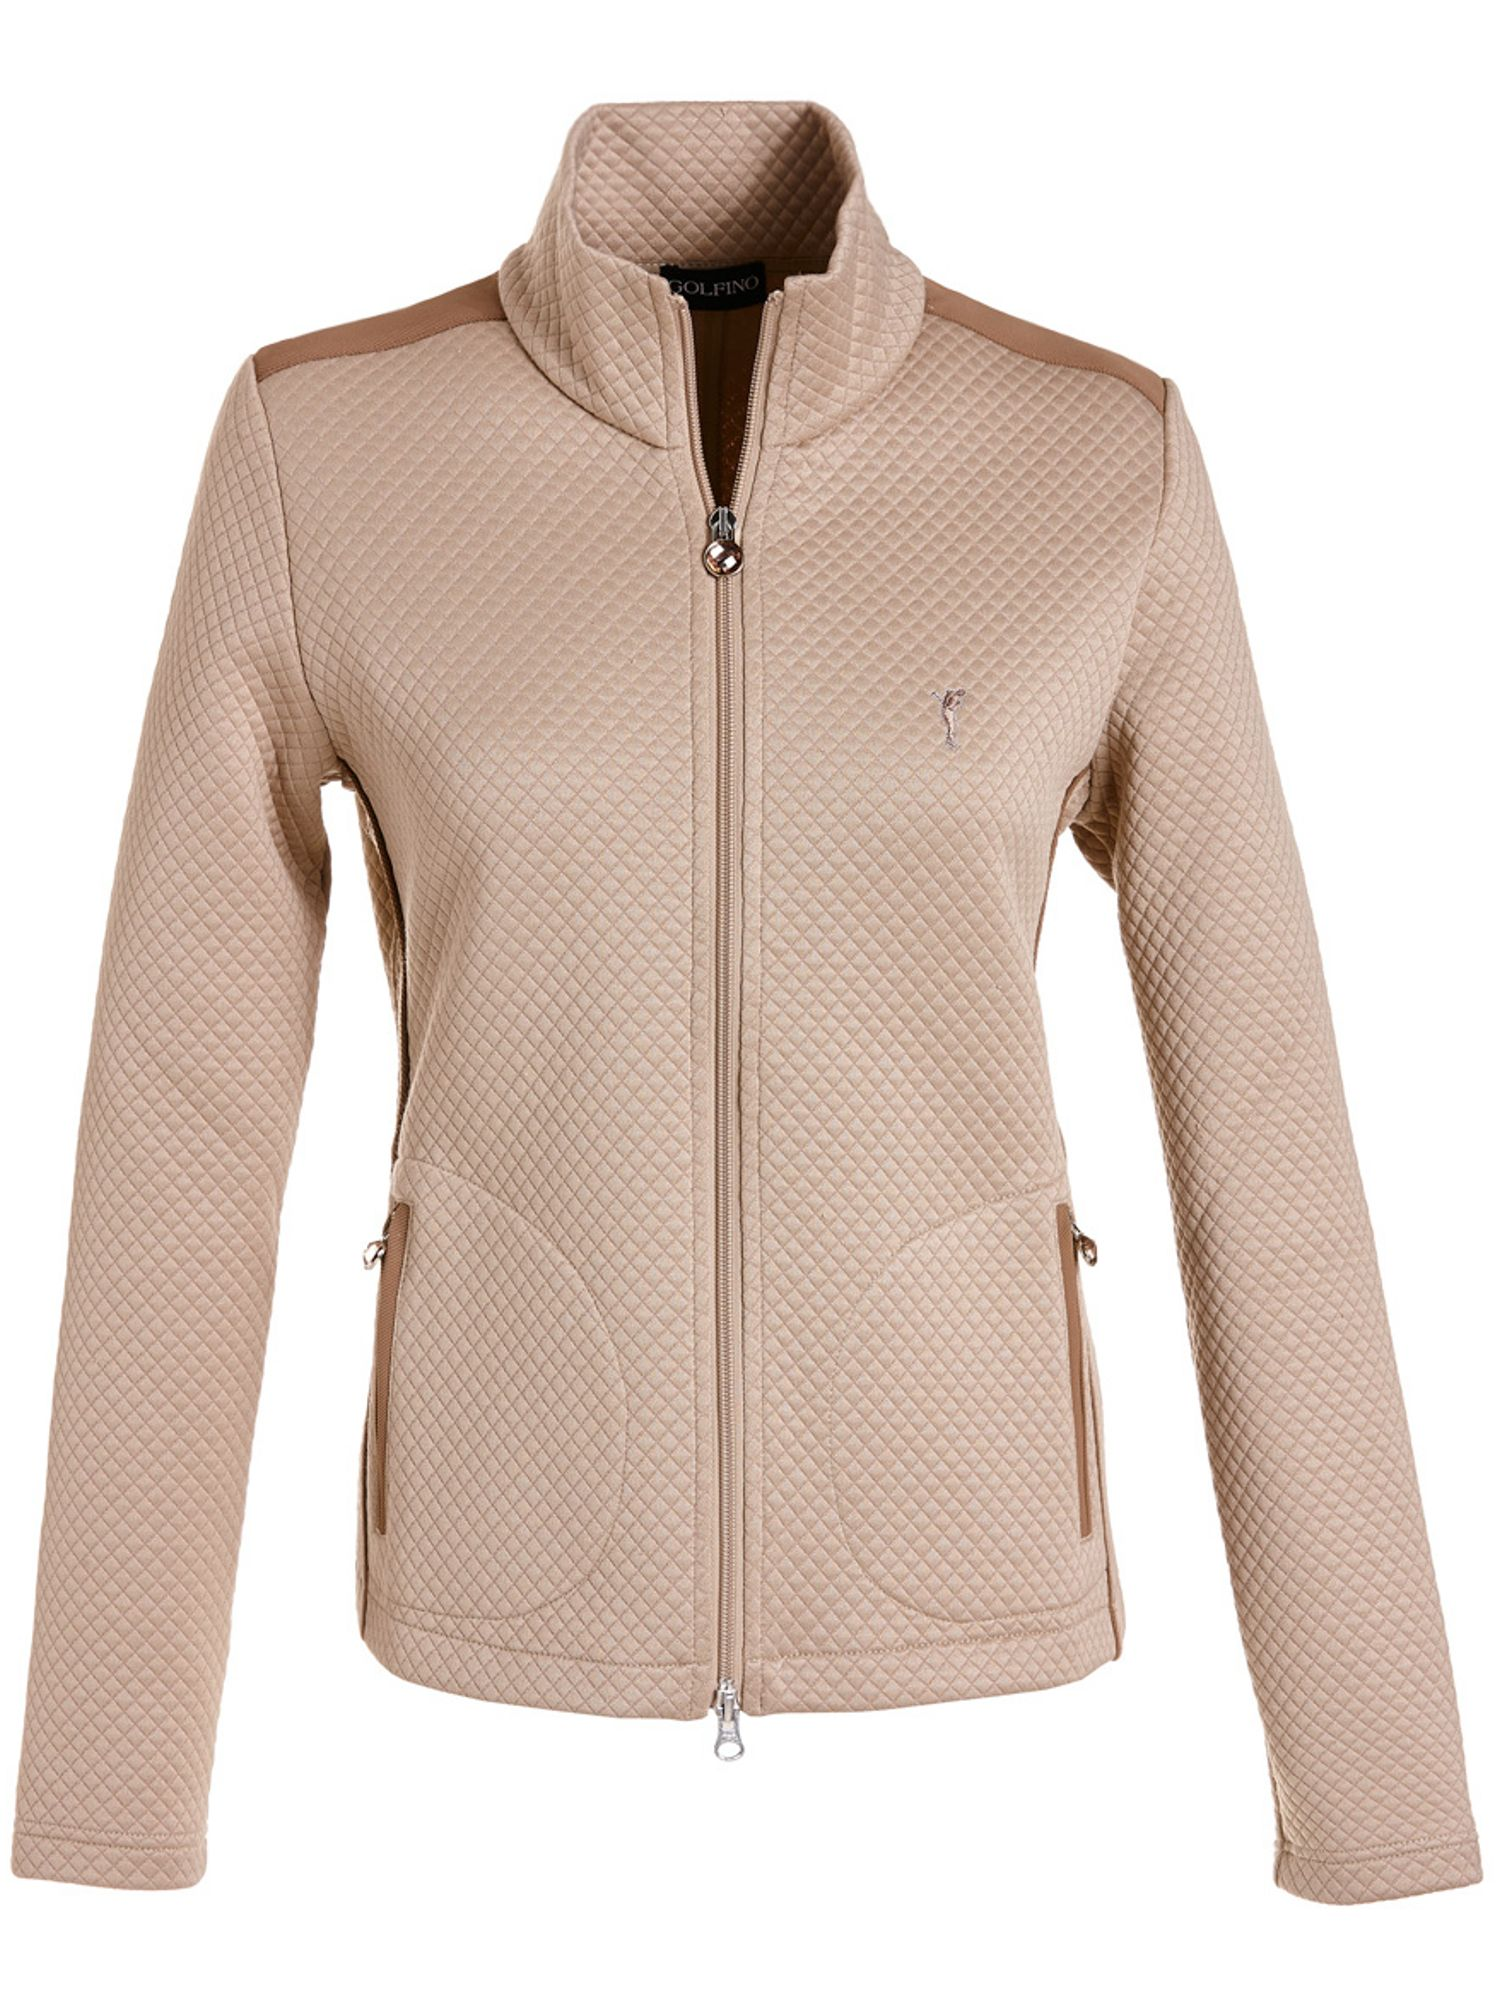 Golfino Golfino Diamond Padded Jacket, Camel